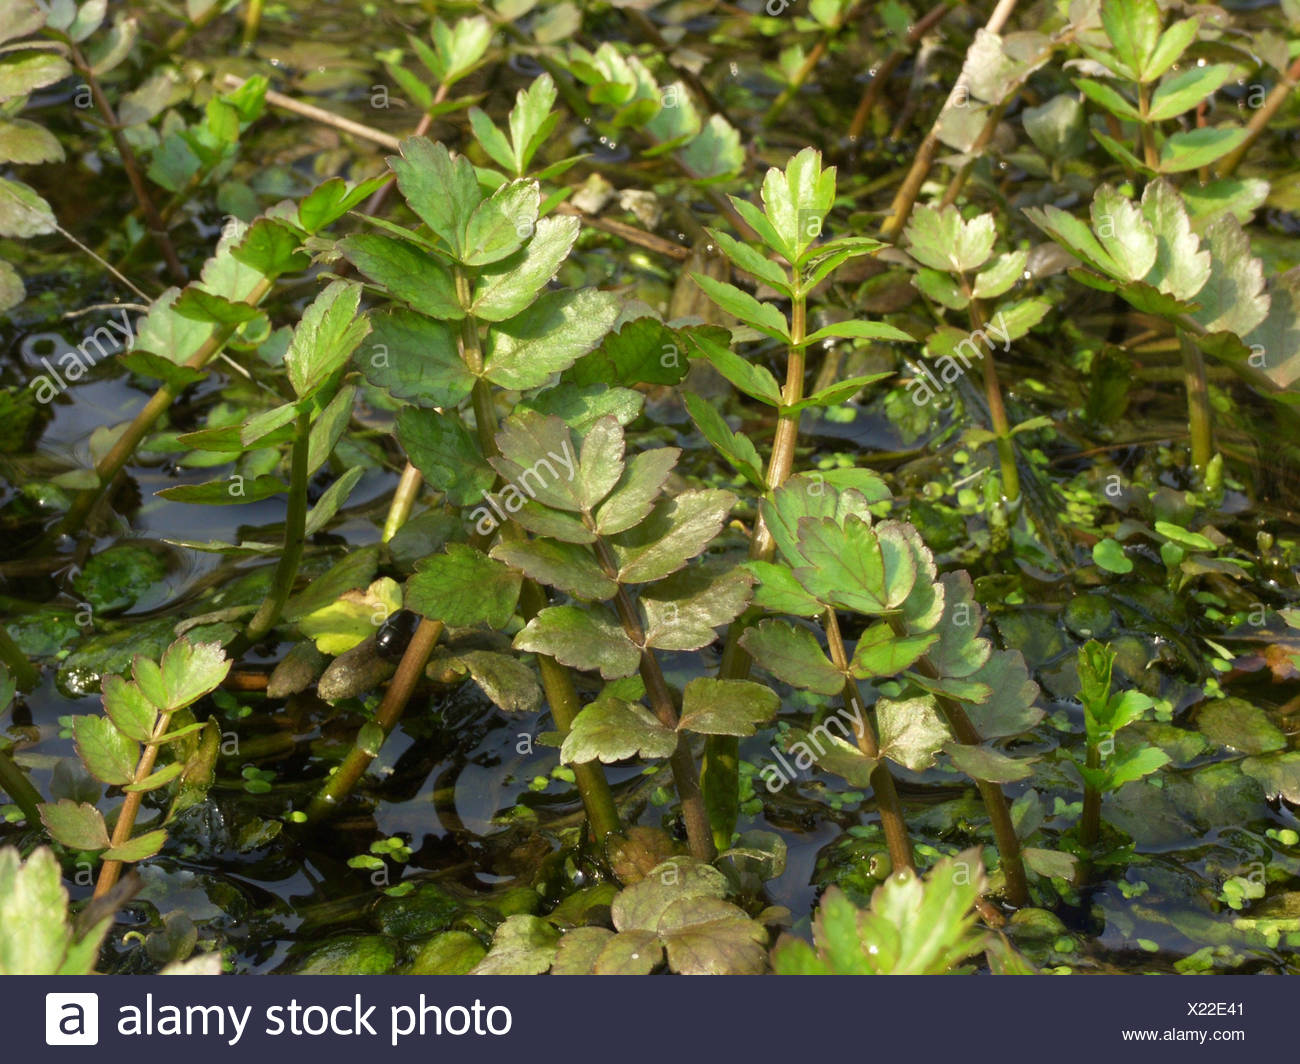 lesser water-parsnip, wild parsnip (Berula erecta), springshoot in a ditch Stock Photo